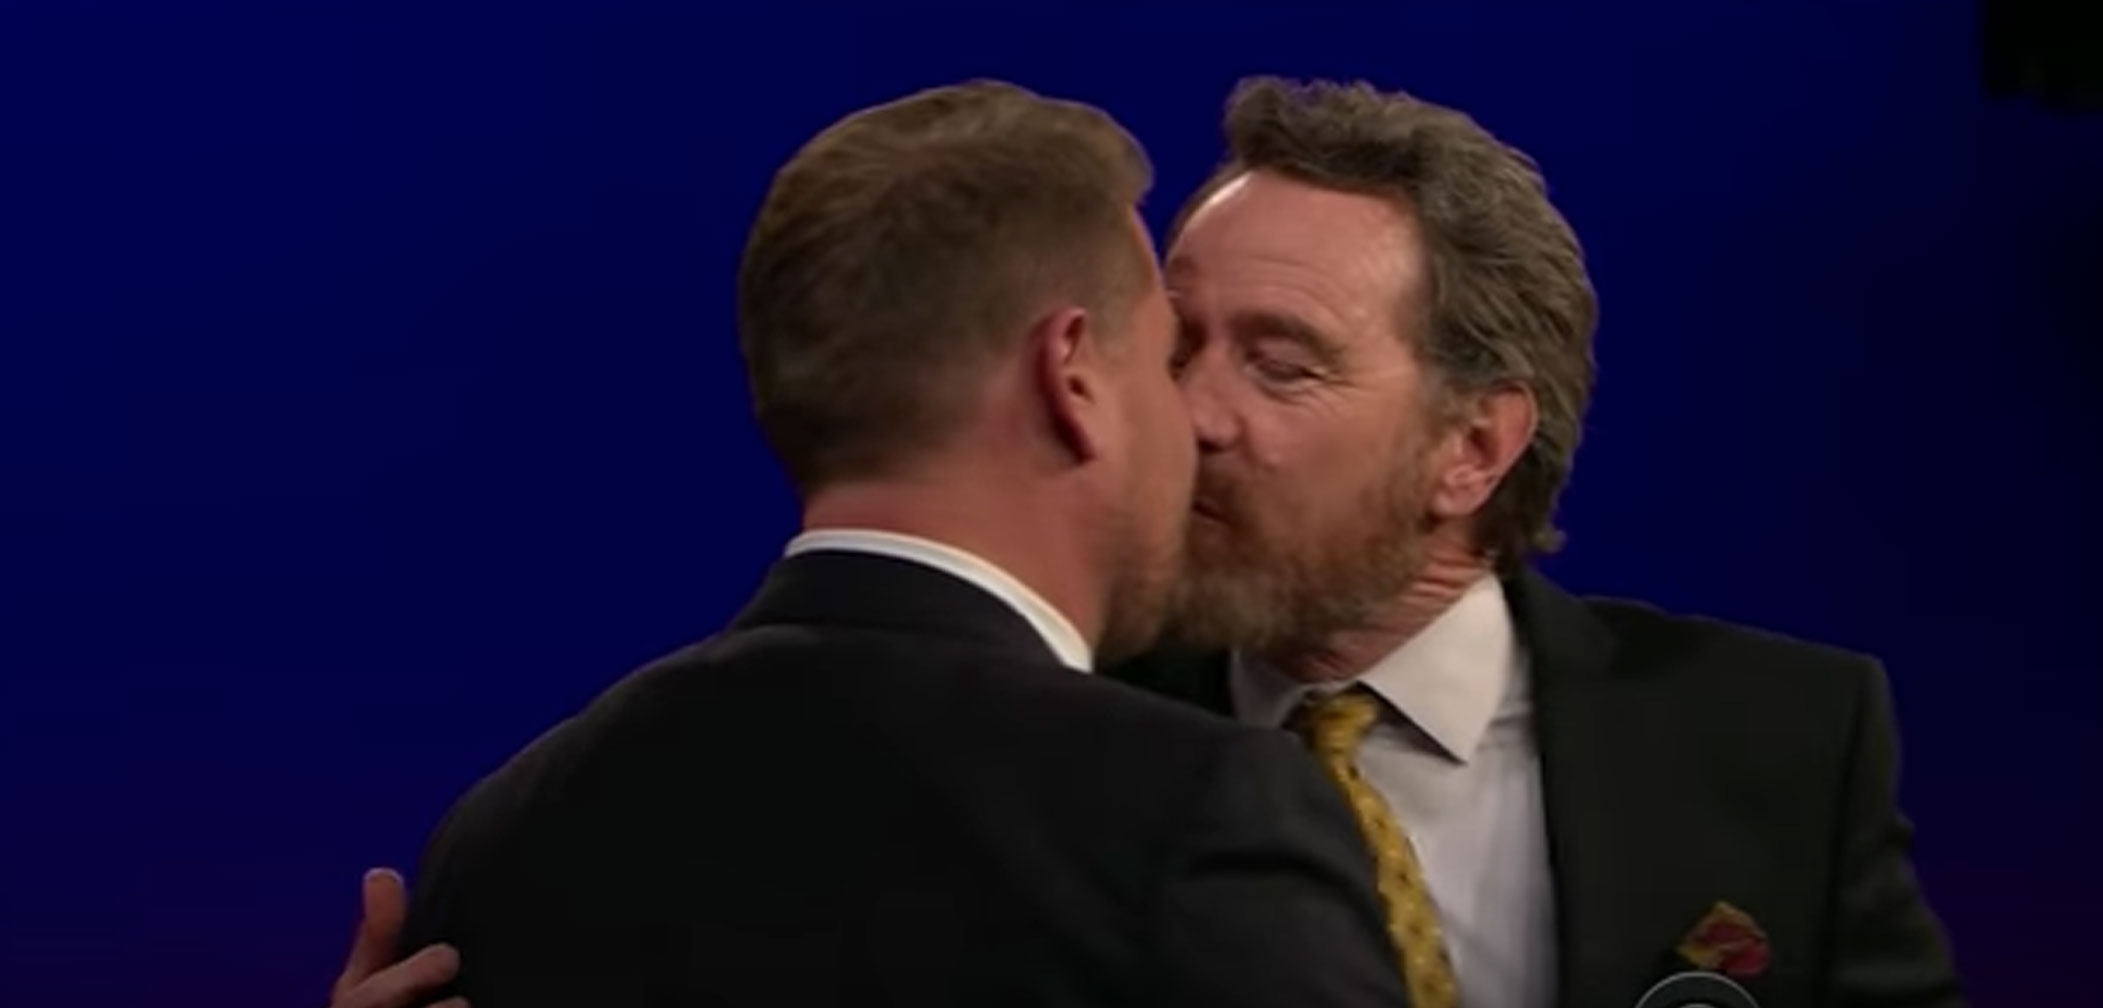 James Corden, Bryan Cranston, kiss, gay, same-sex, homo, homsexual, bro, talk show, smooch, neck